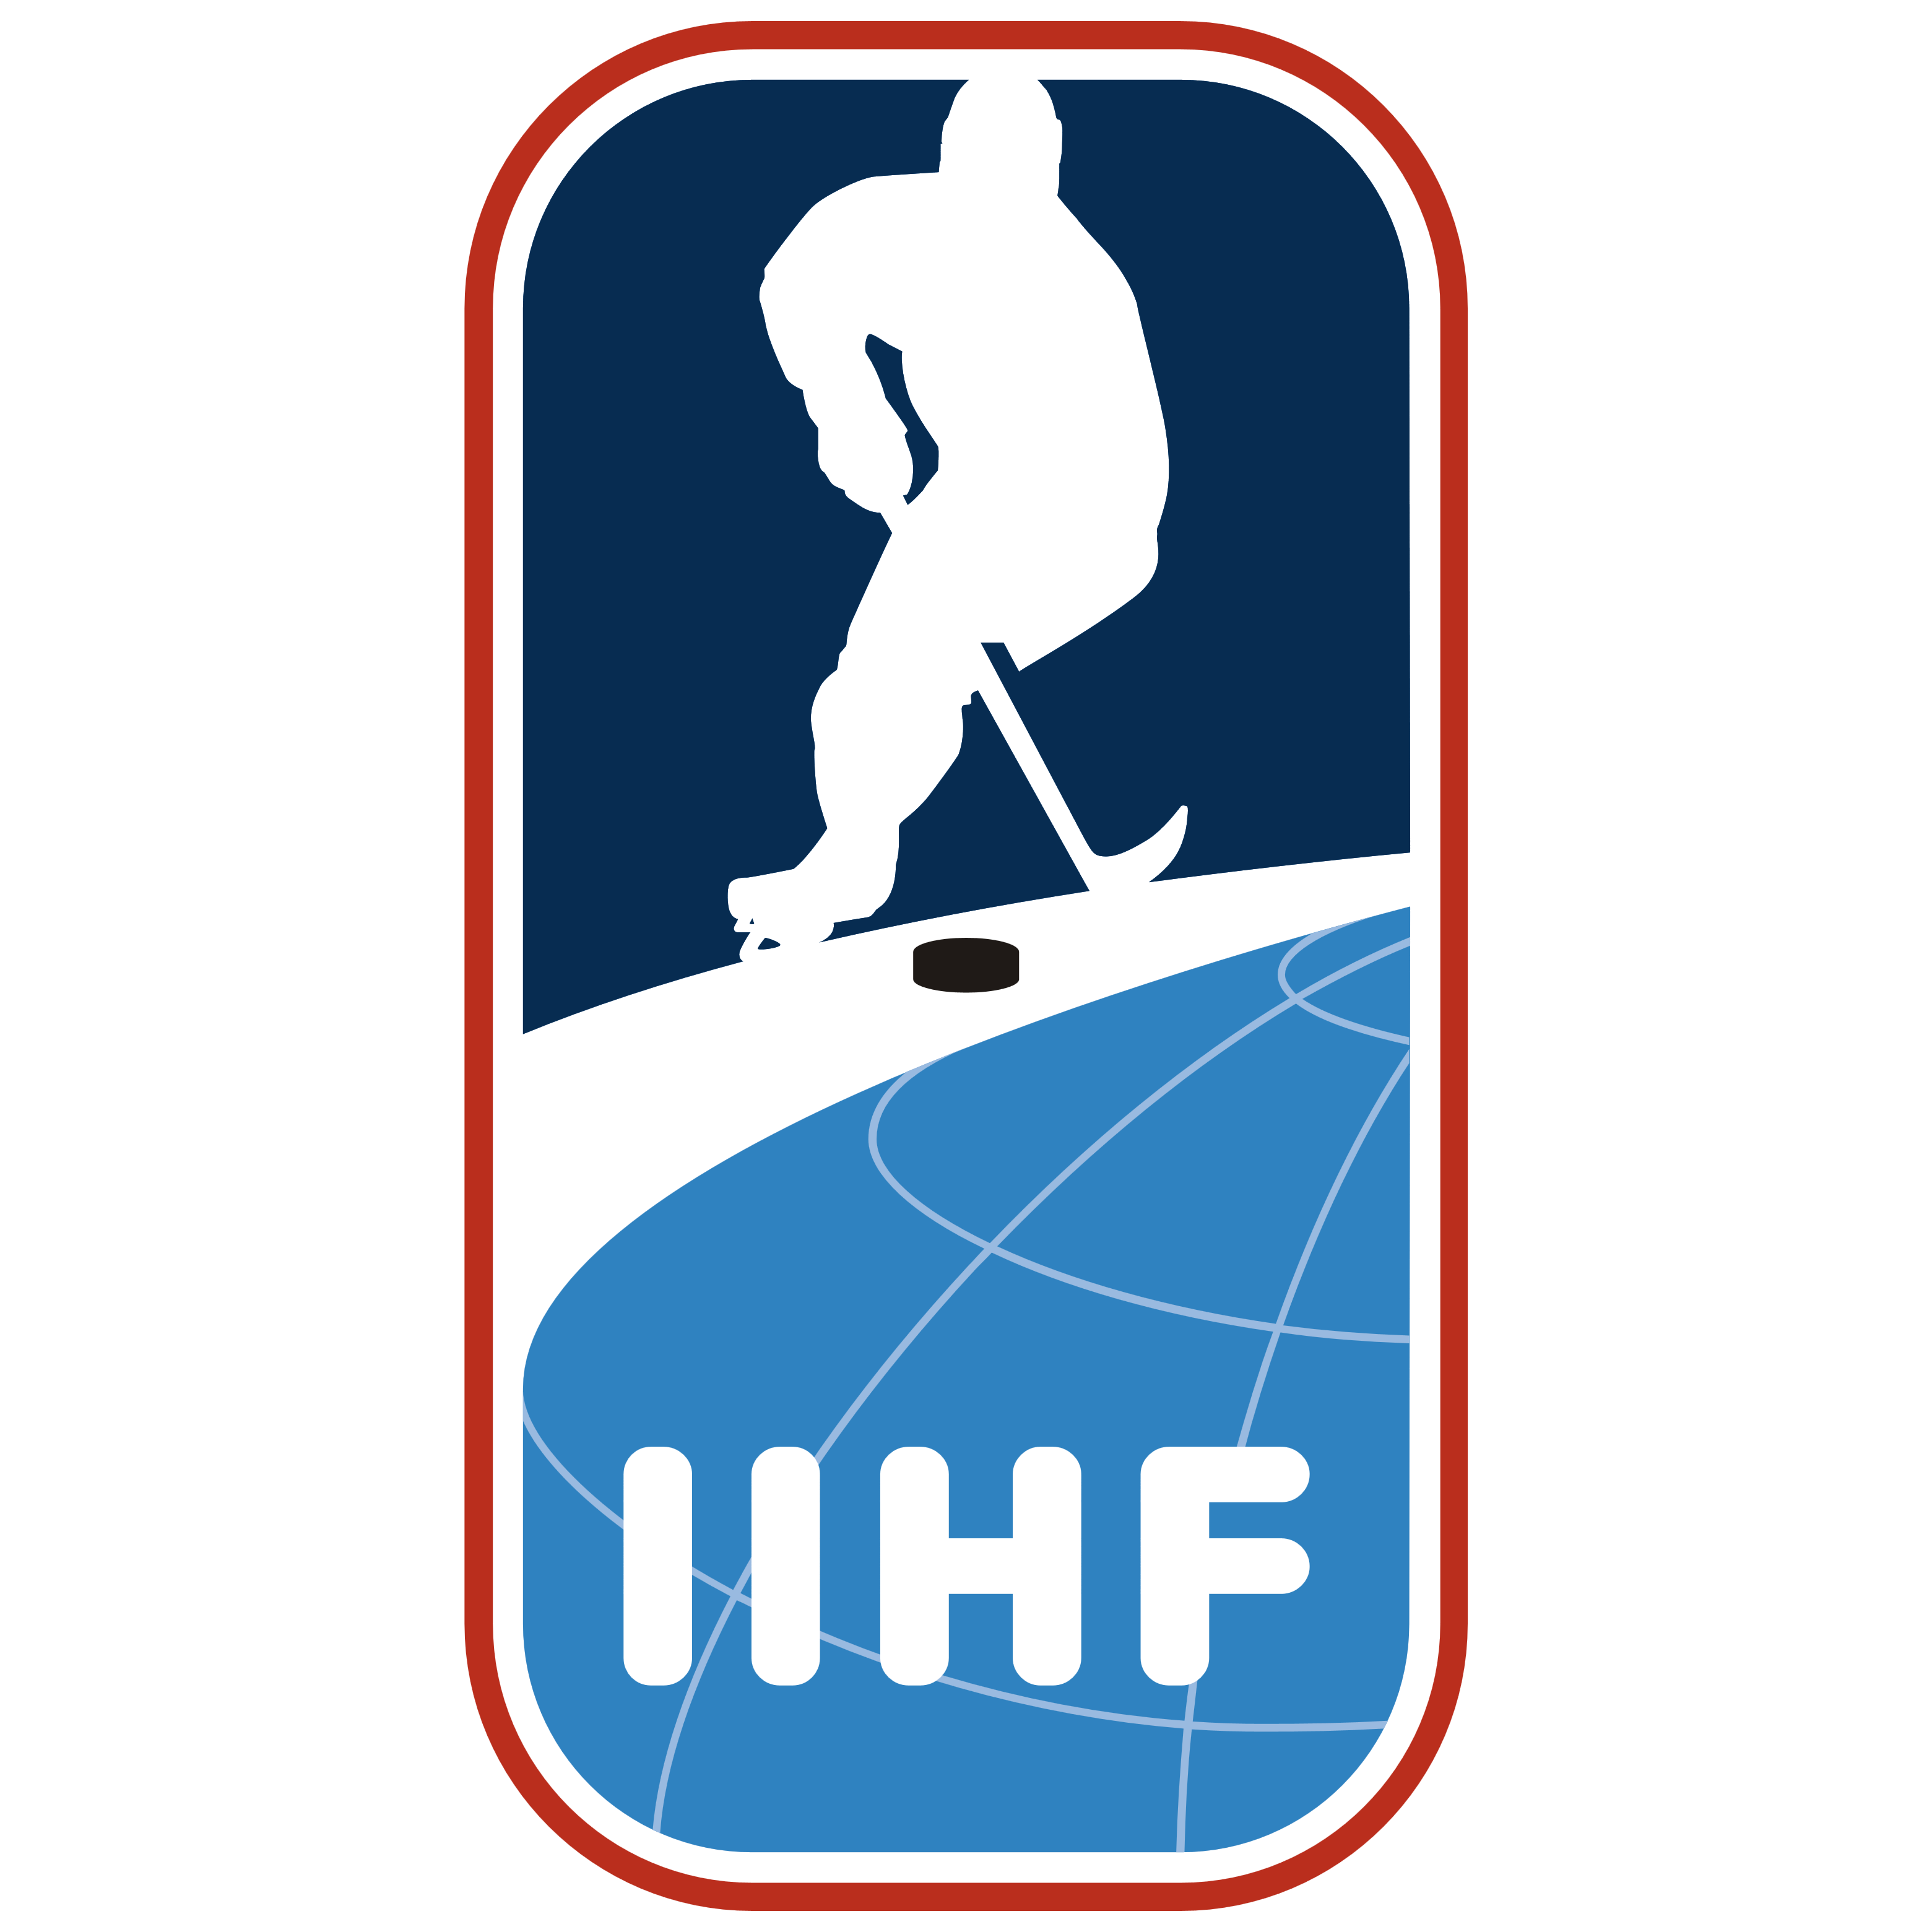 letteriihf